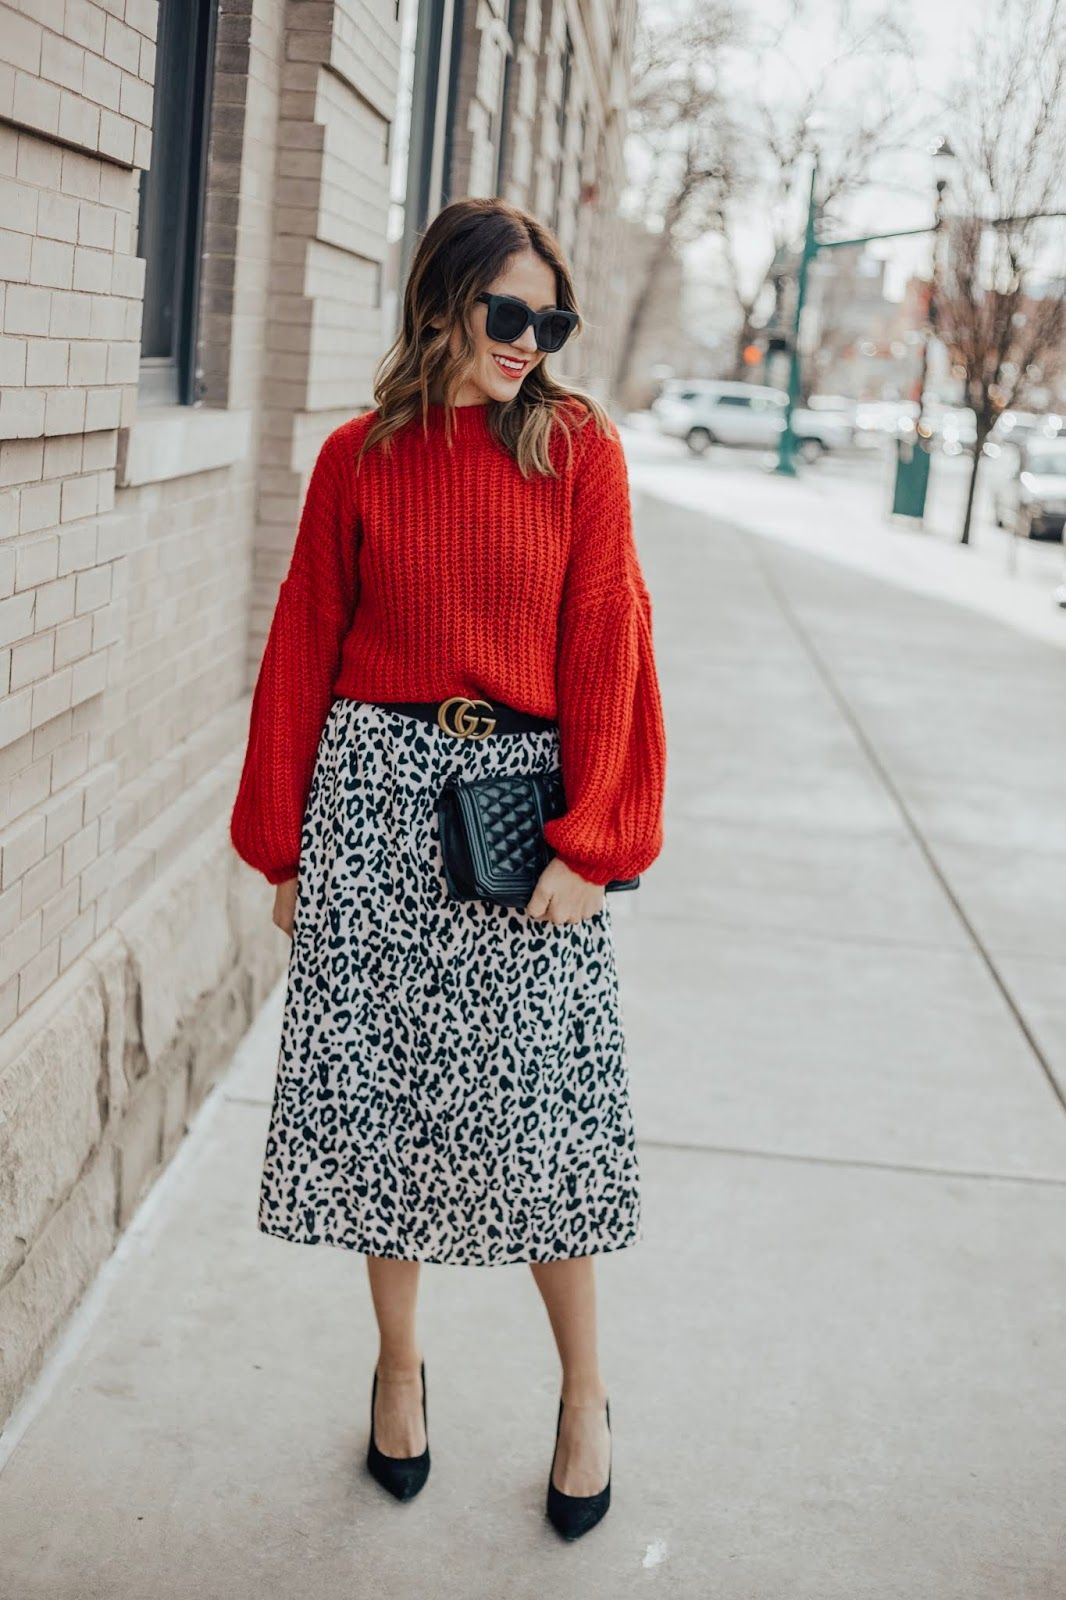 Leopard Skirt + Red Sweater | Red sweater outfit, Leopard